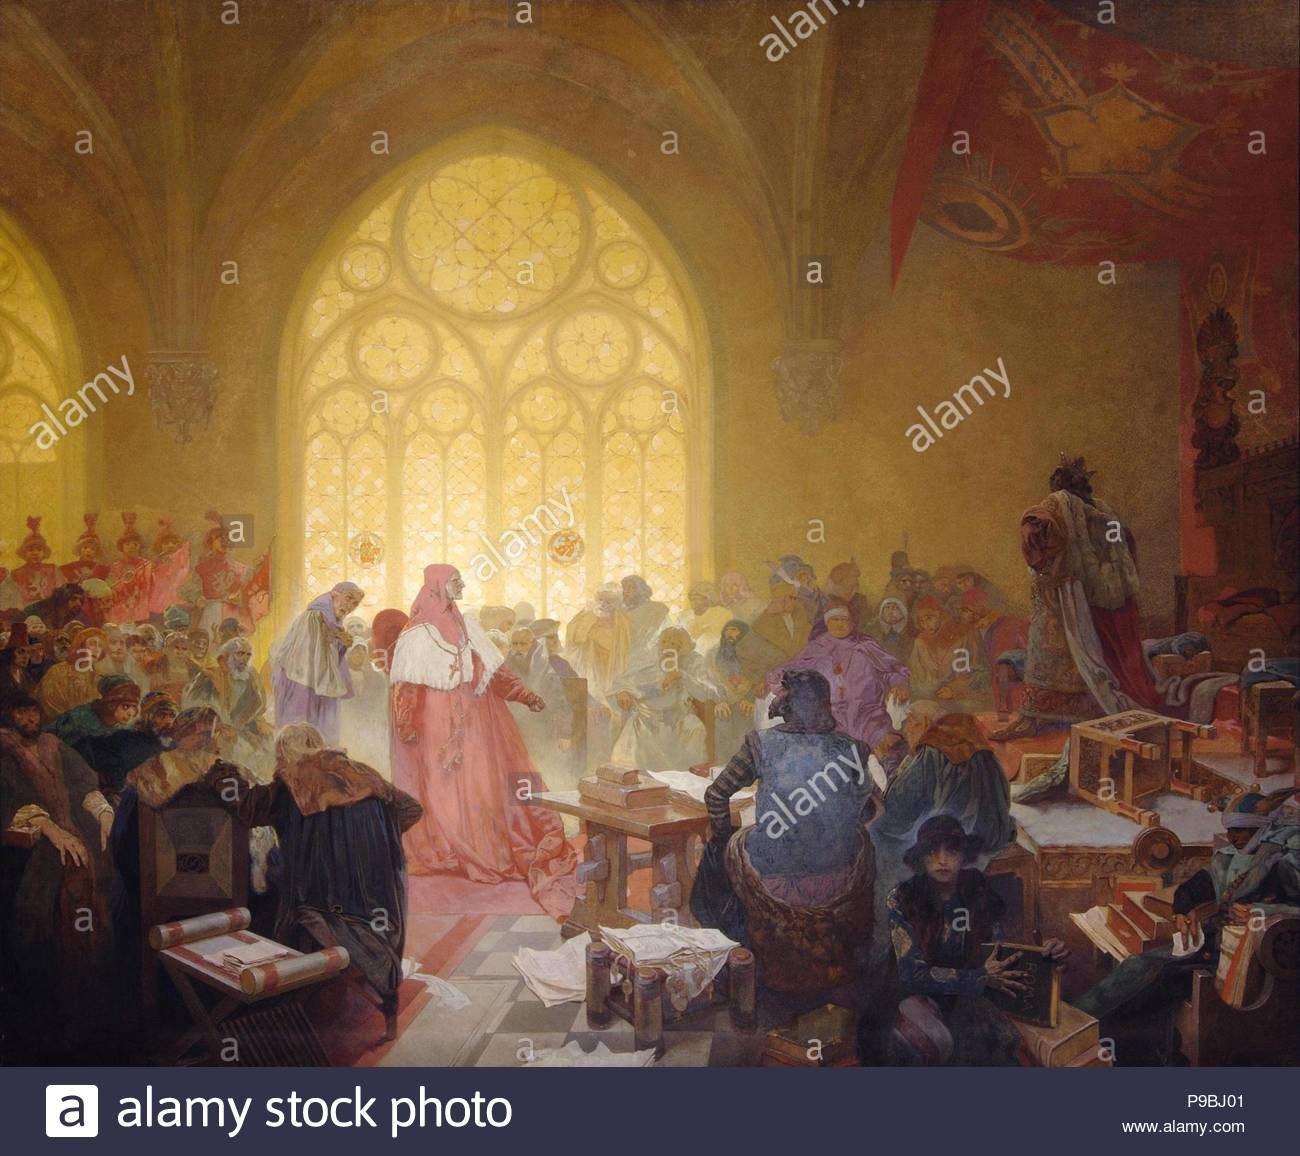 The Hussite King George of Podebrady (The cycle The Slav Epic). Museum: City Gallery Prague. - Stock Image